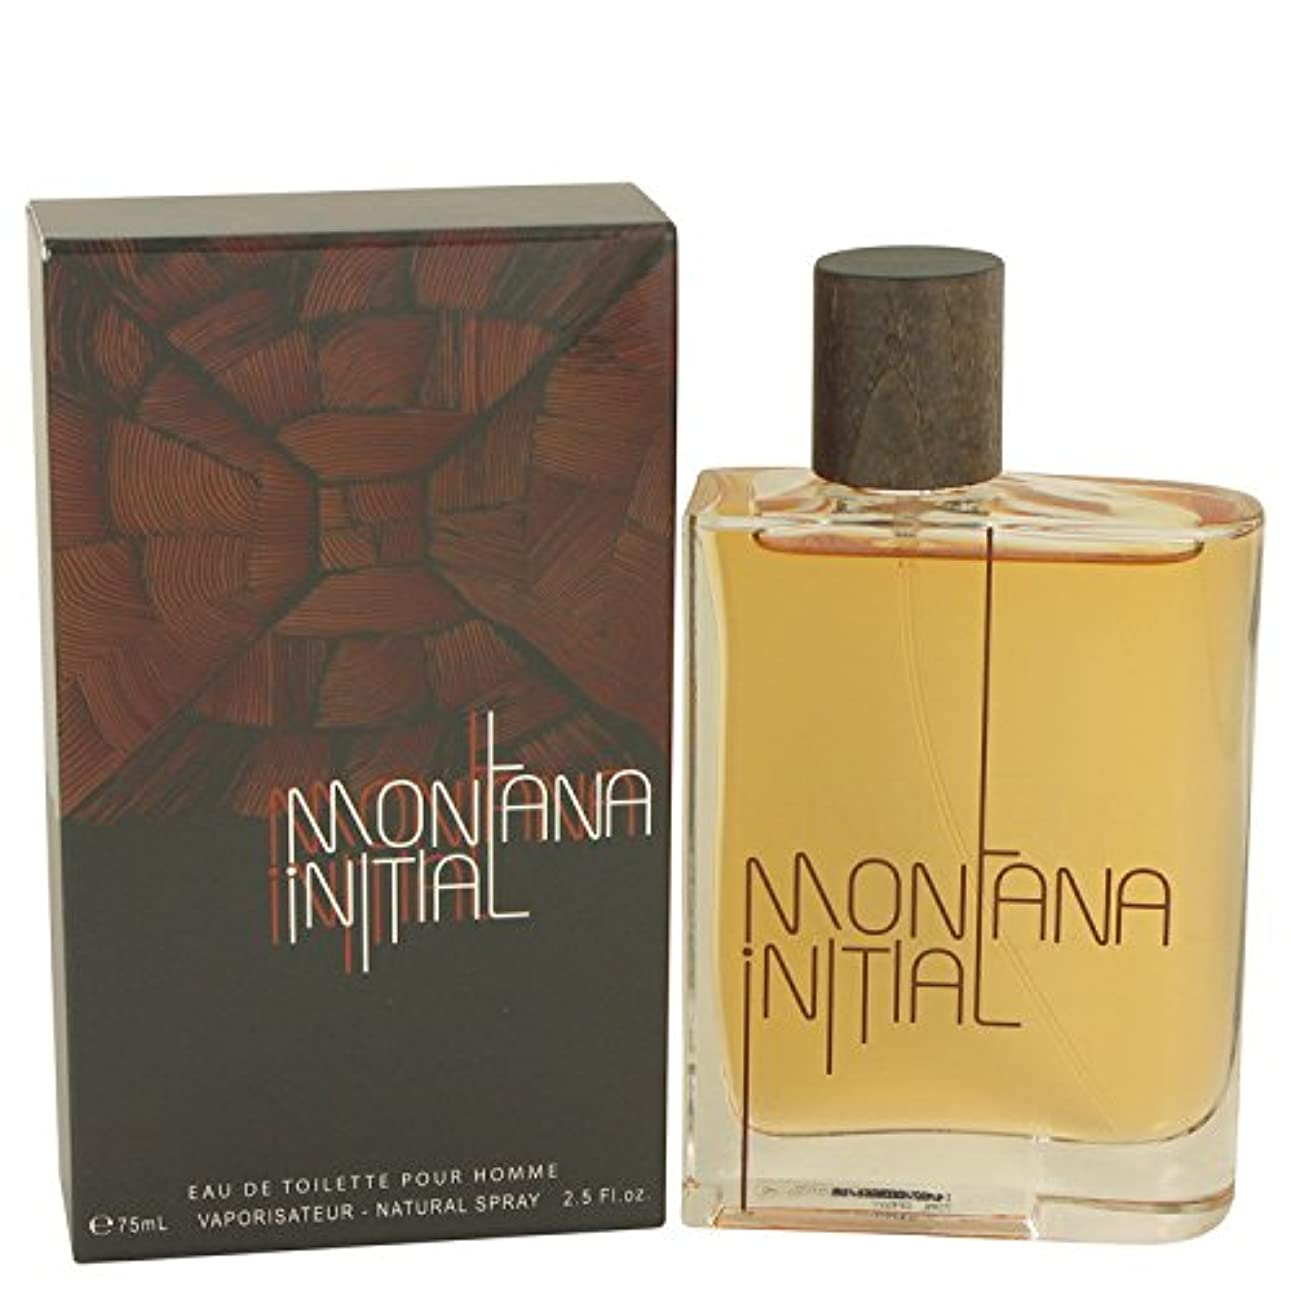 表示英語の授業がありますゆるいMontana Initial by Montana Eau De Toilette Spray 2.5 oz